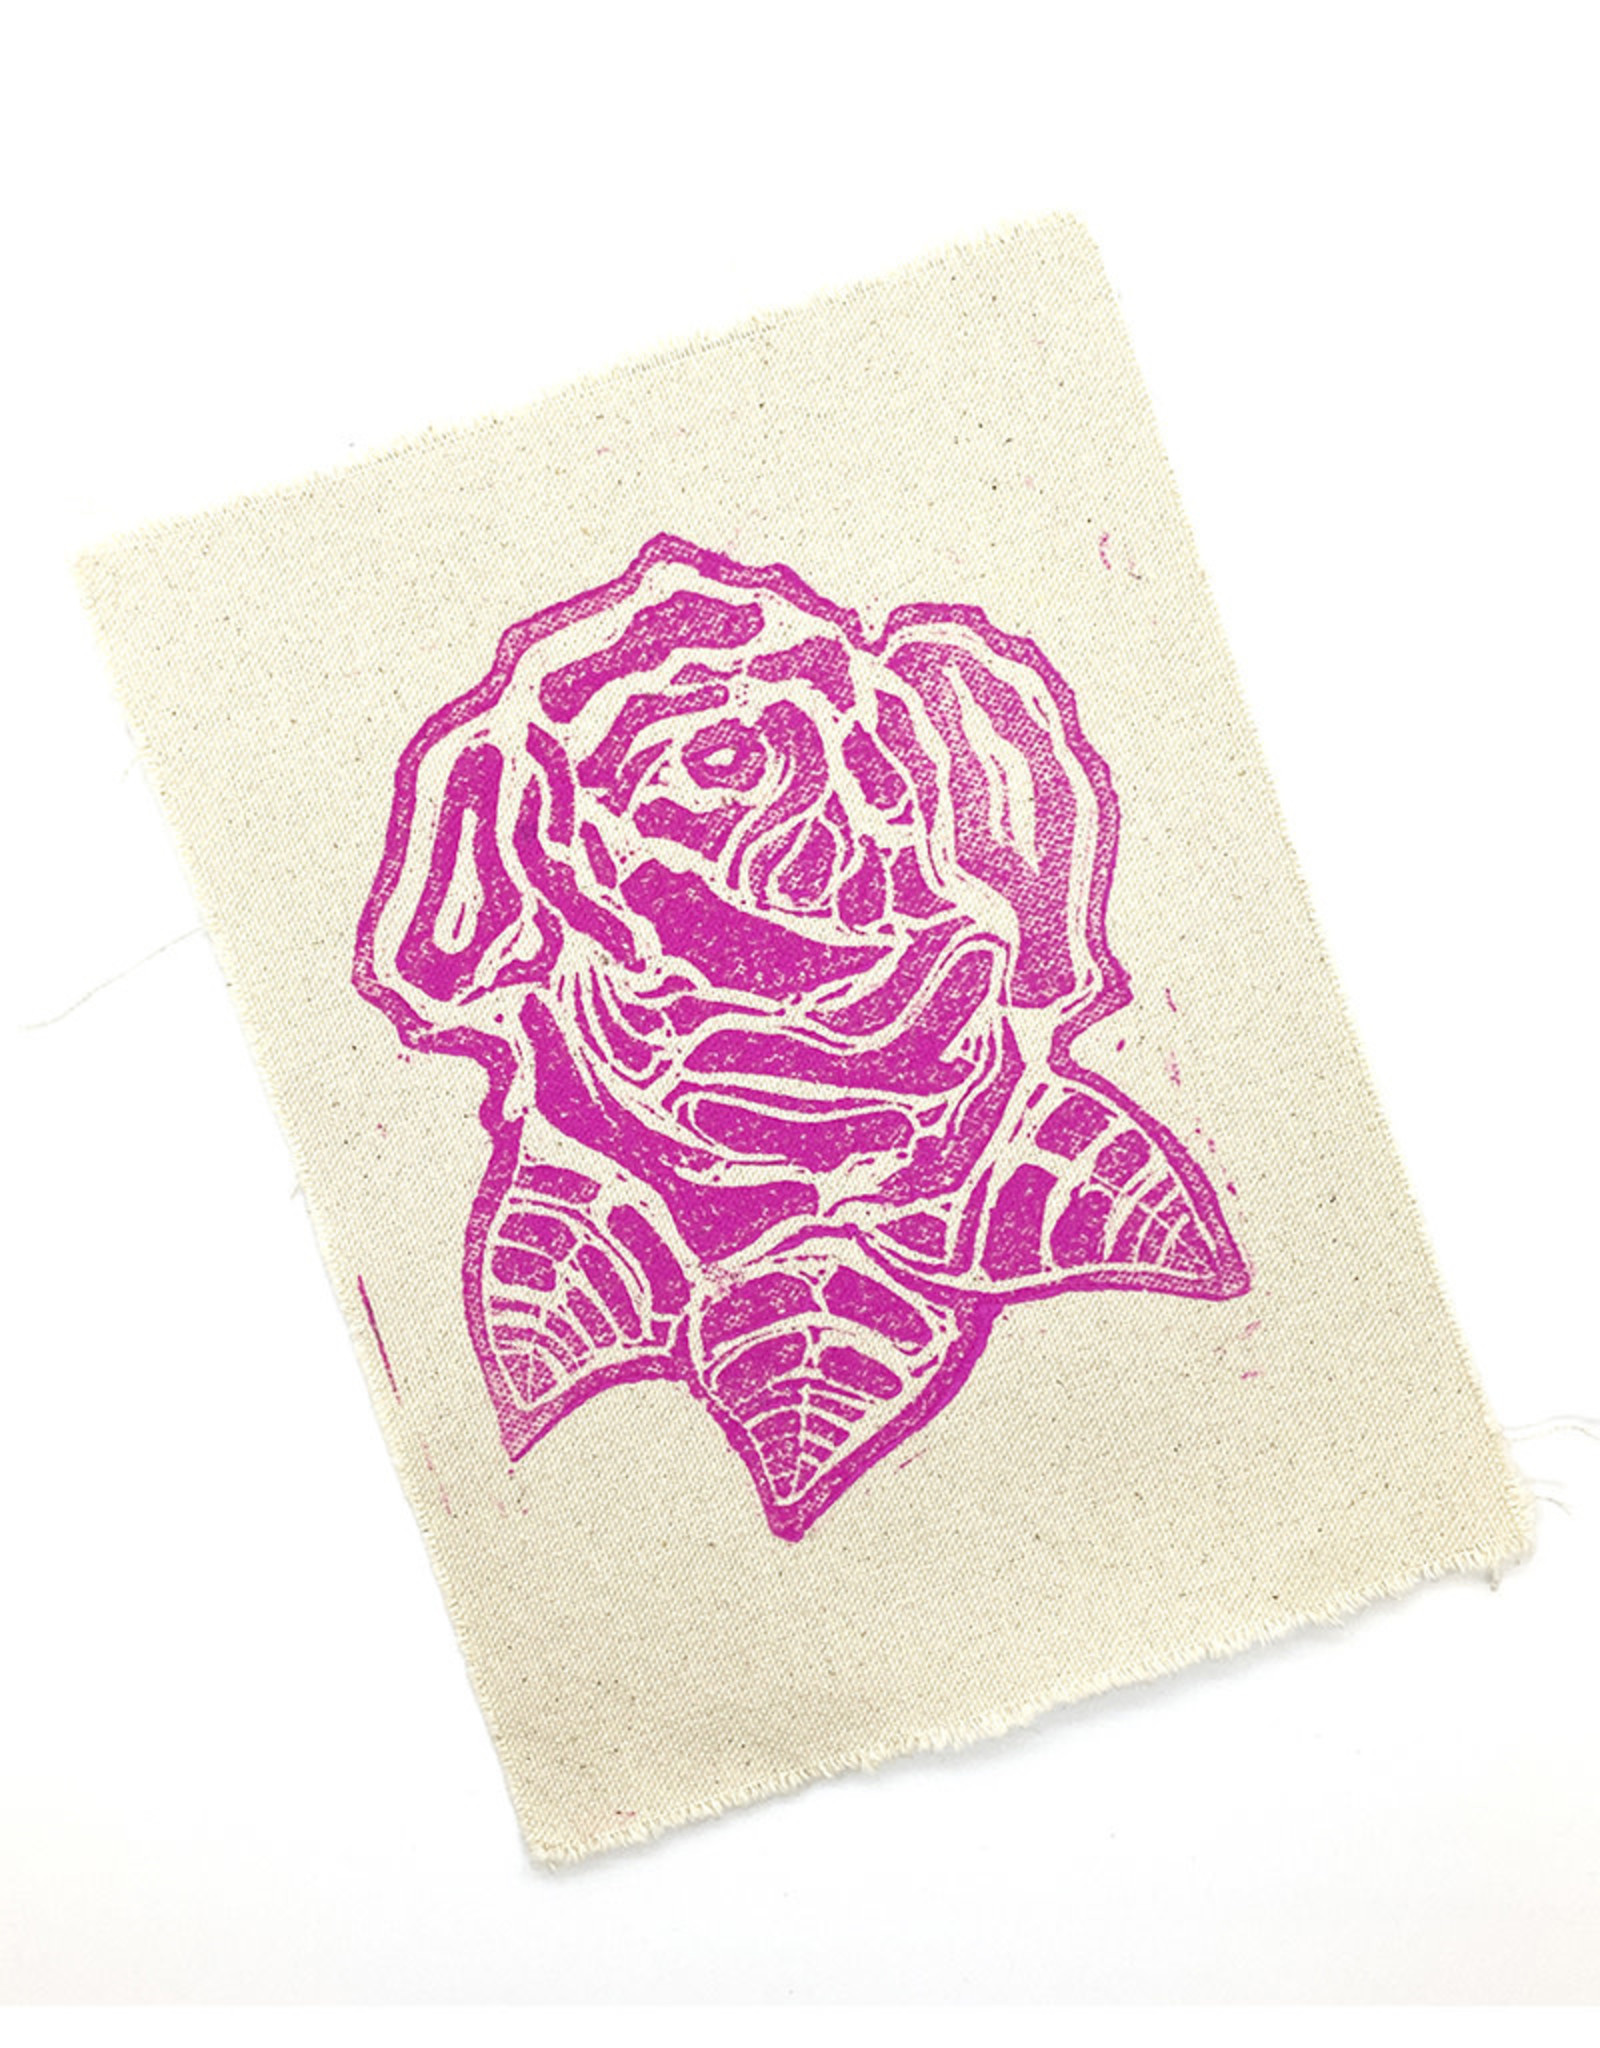 Paul Punzo Rose Patches by Paul Punzo